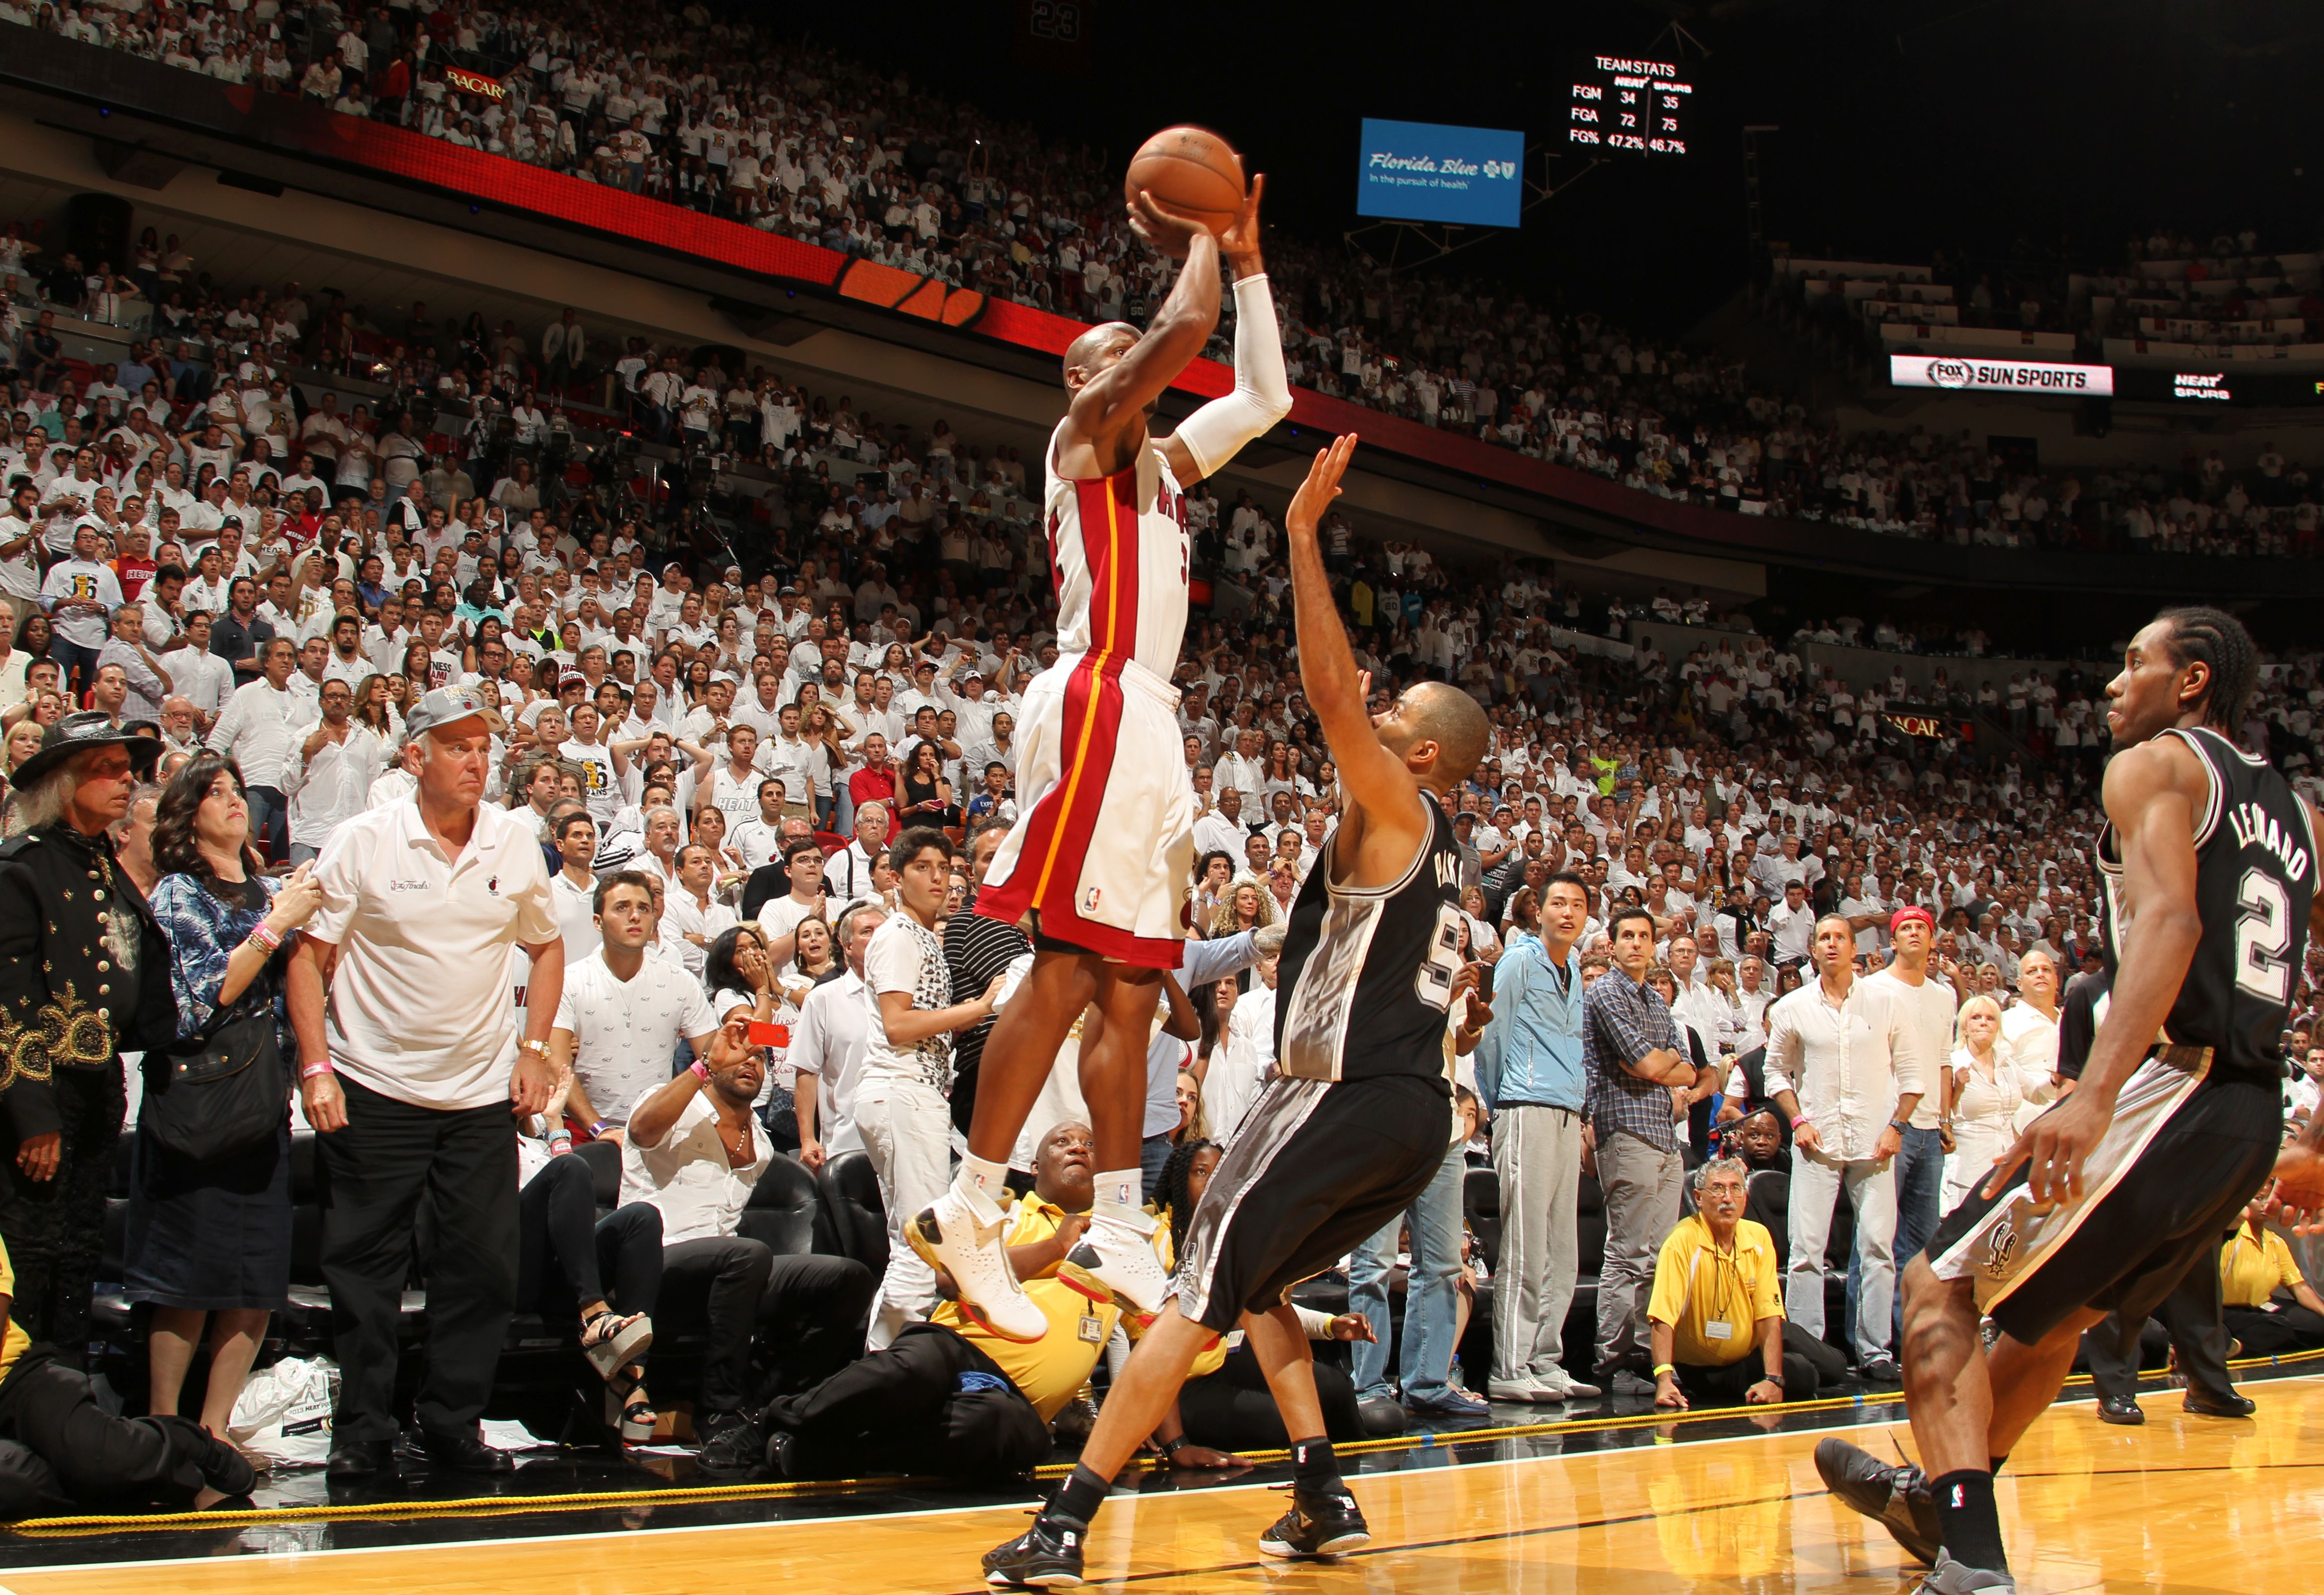 Ray Allen s 3-pointer in the 2013 NBA Finals of those events that has grown  in stature even in the relatively short time since it happened. 7549593eb